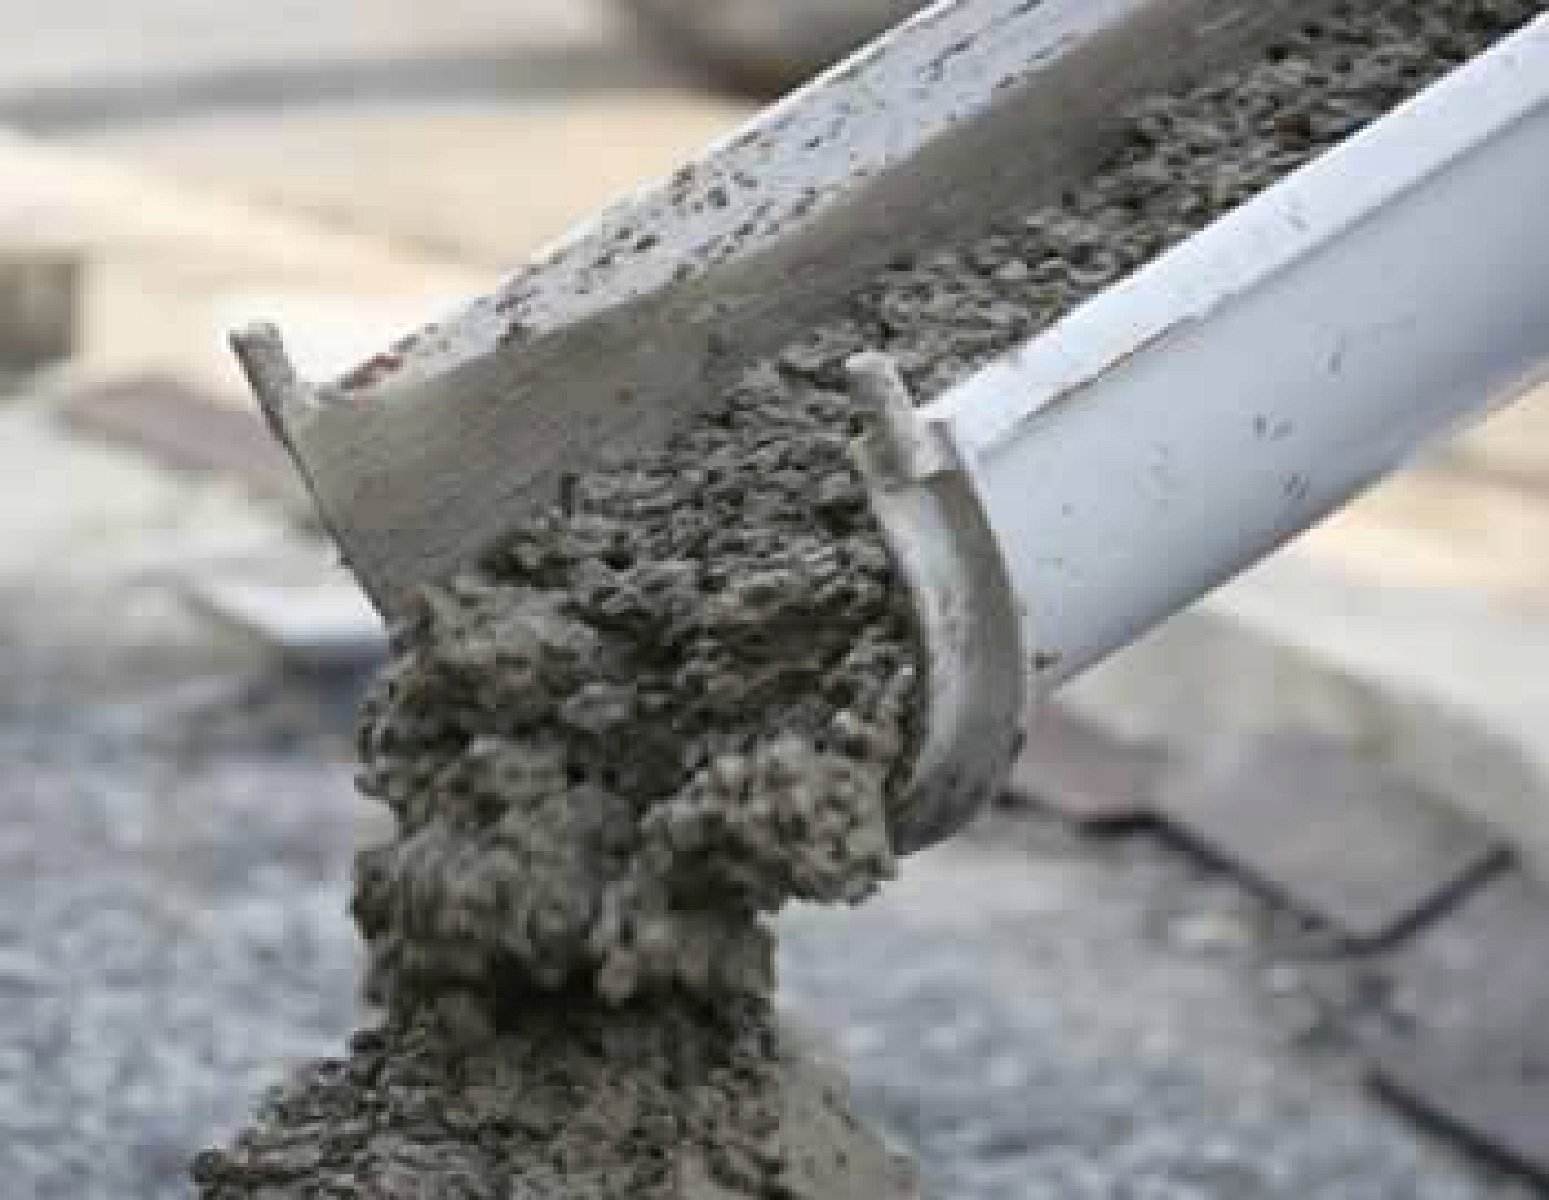 Shree Cement to set up Rs 600 crore cement plant in Jharkhand